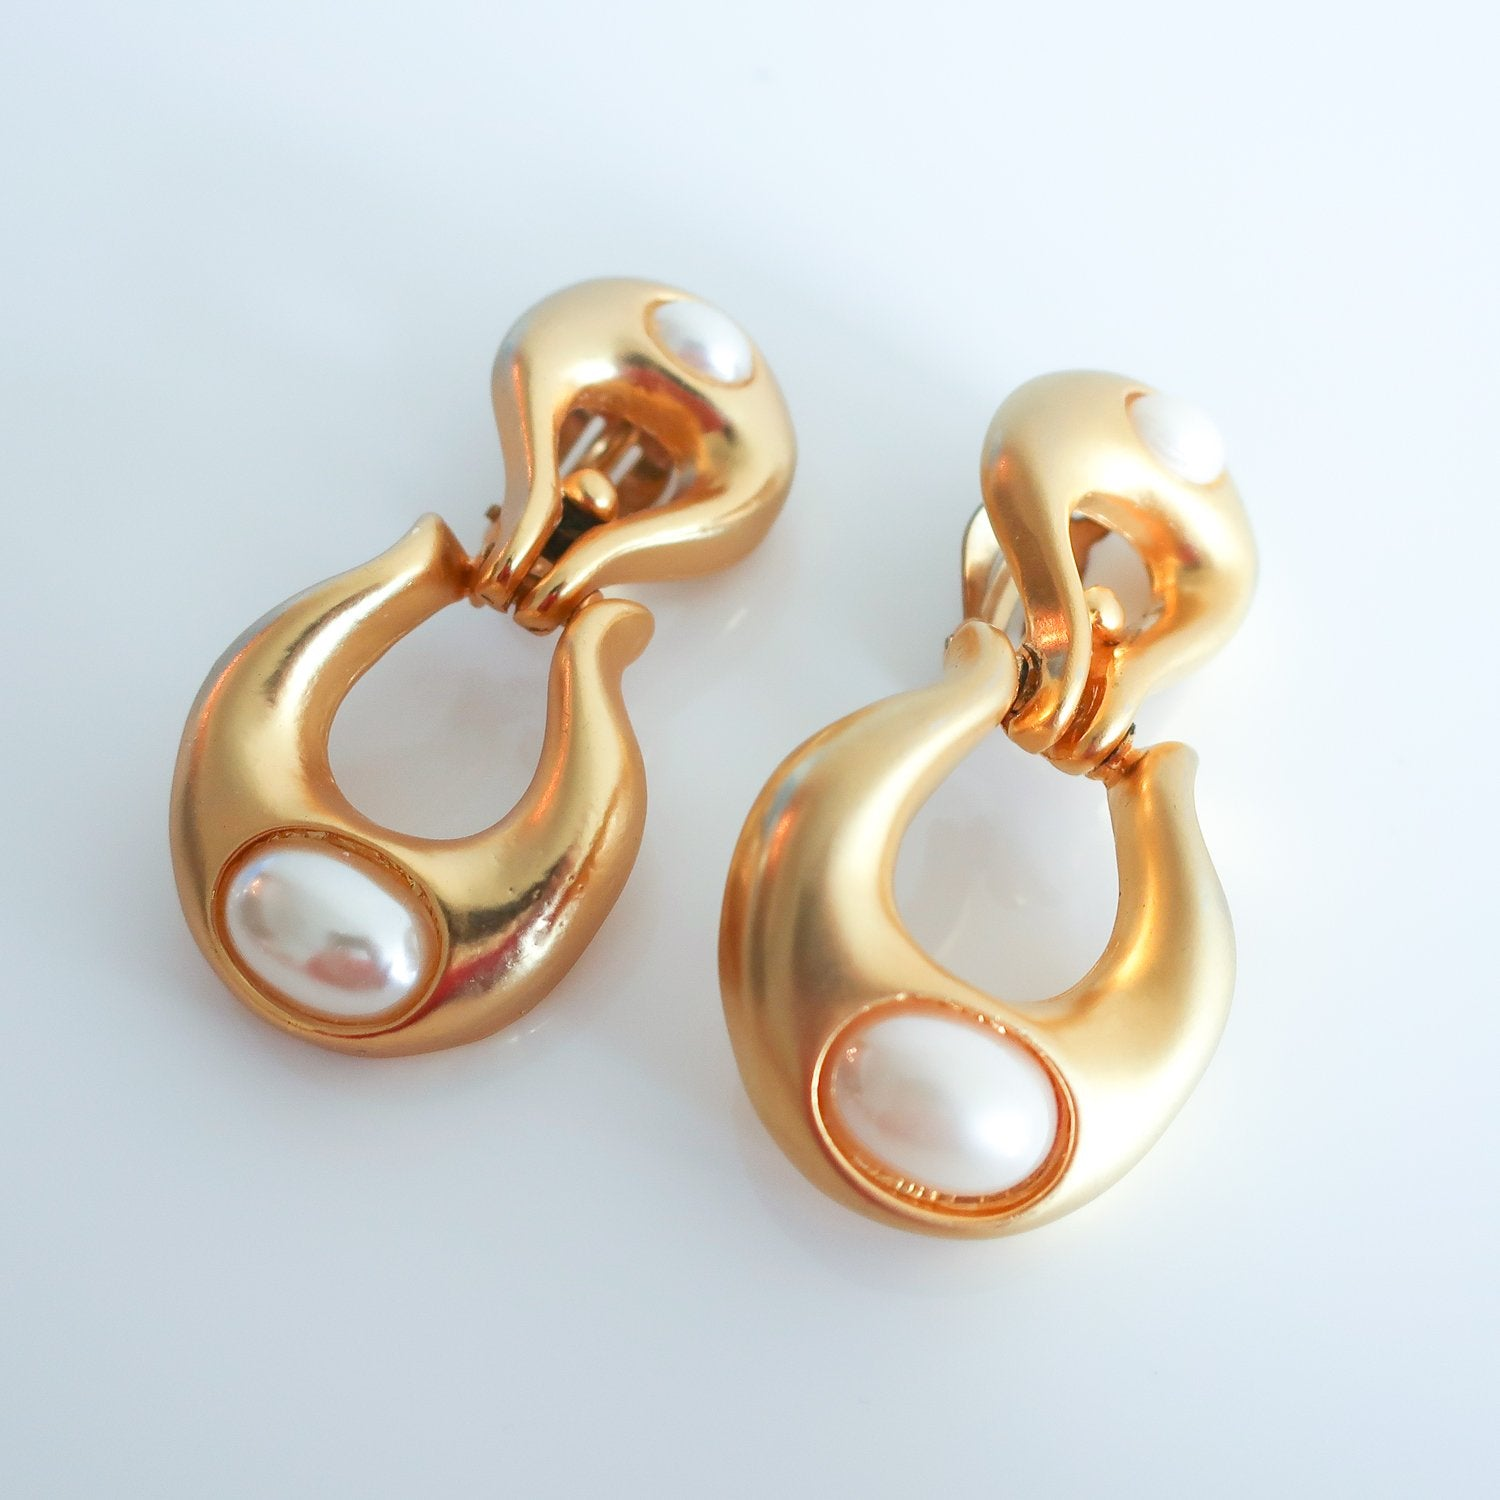 "Second Room Vintage Clothing. Make a statement with these rad matte finish gold tone and faux pearl door knocker style, clip on earrings. These are 2.25"" long and 1.25"" at the widest part. Free North American shipping on all orders."